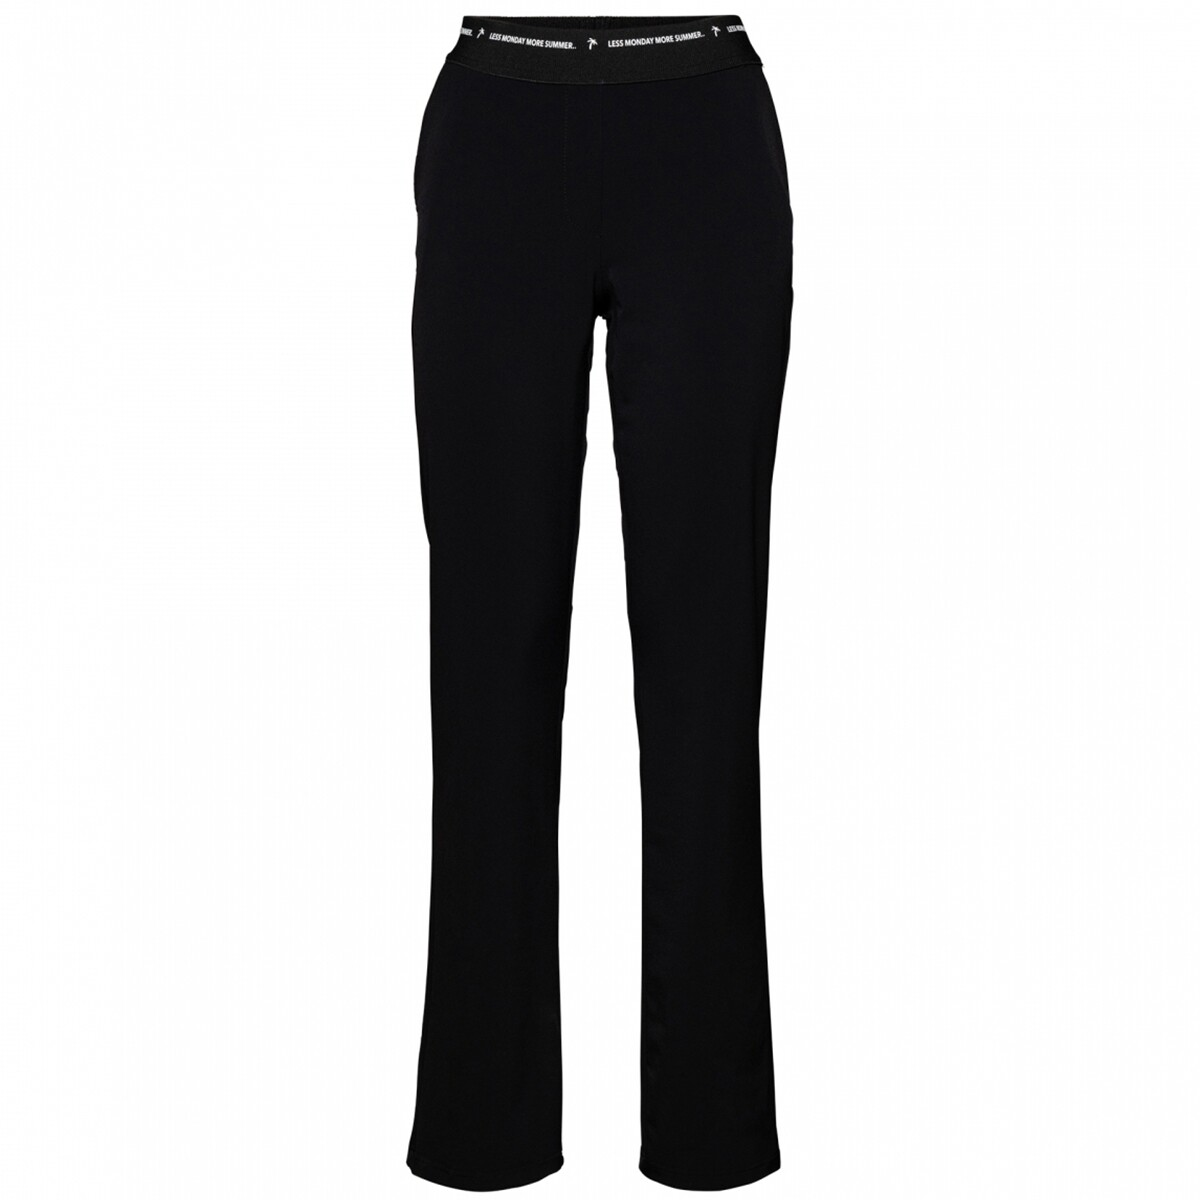 &Co Patricia pants (elastische band)